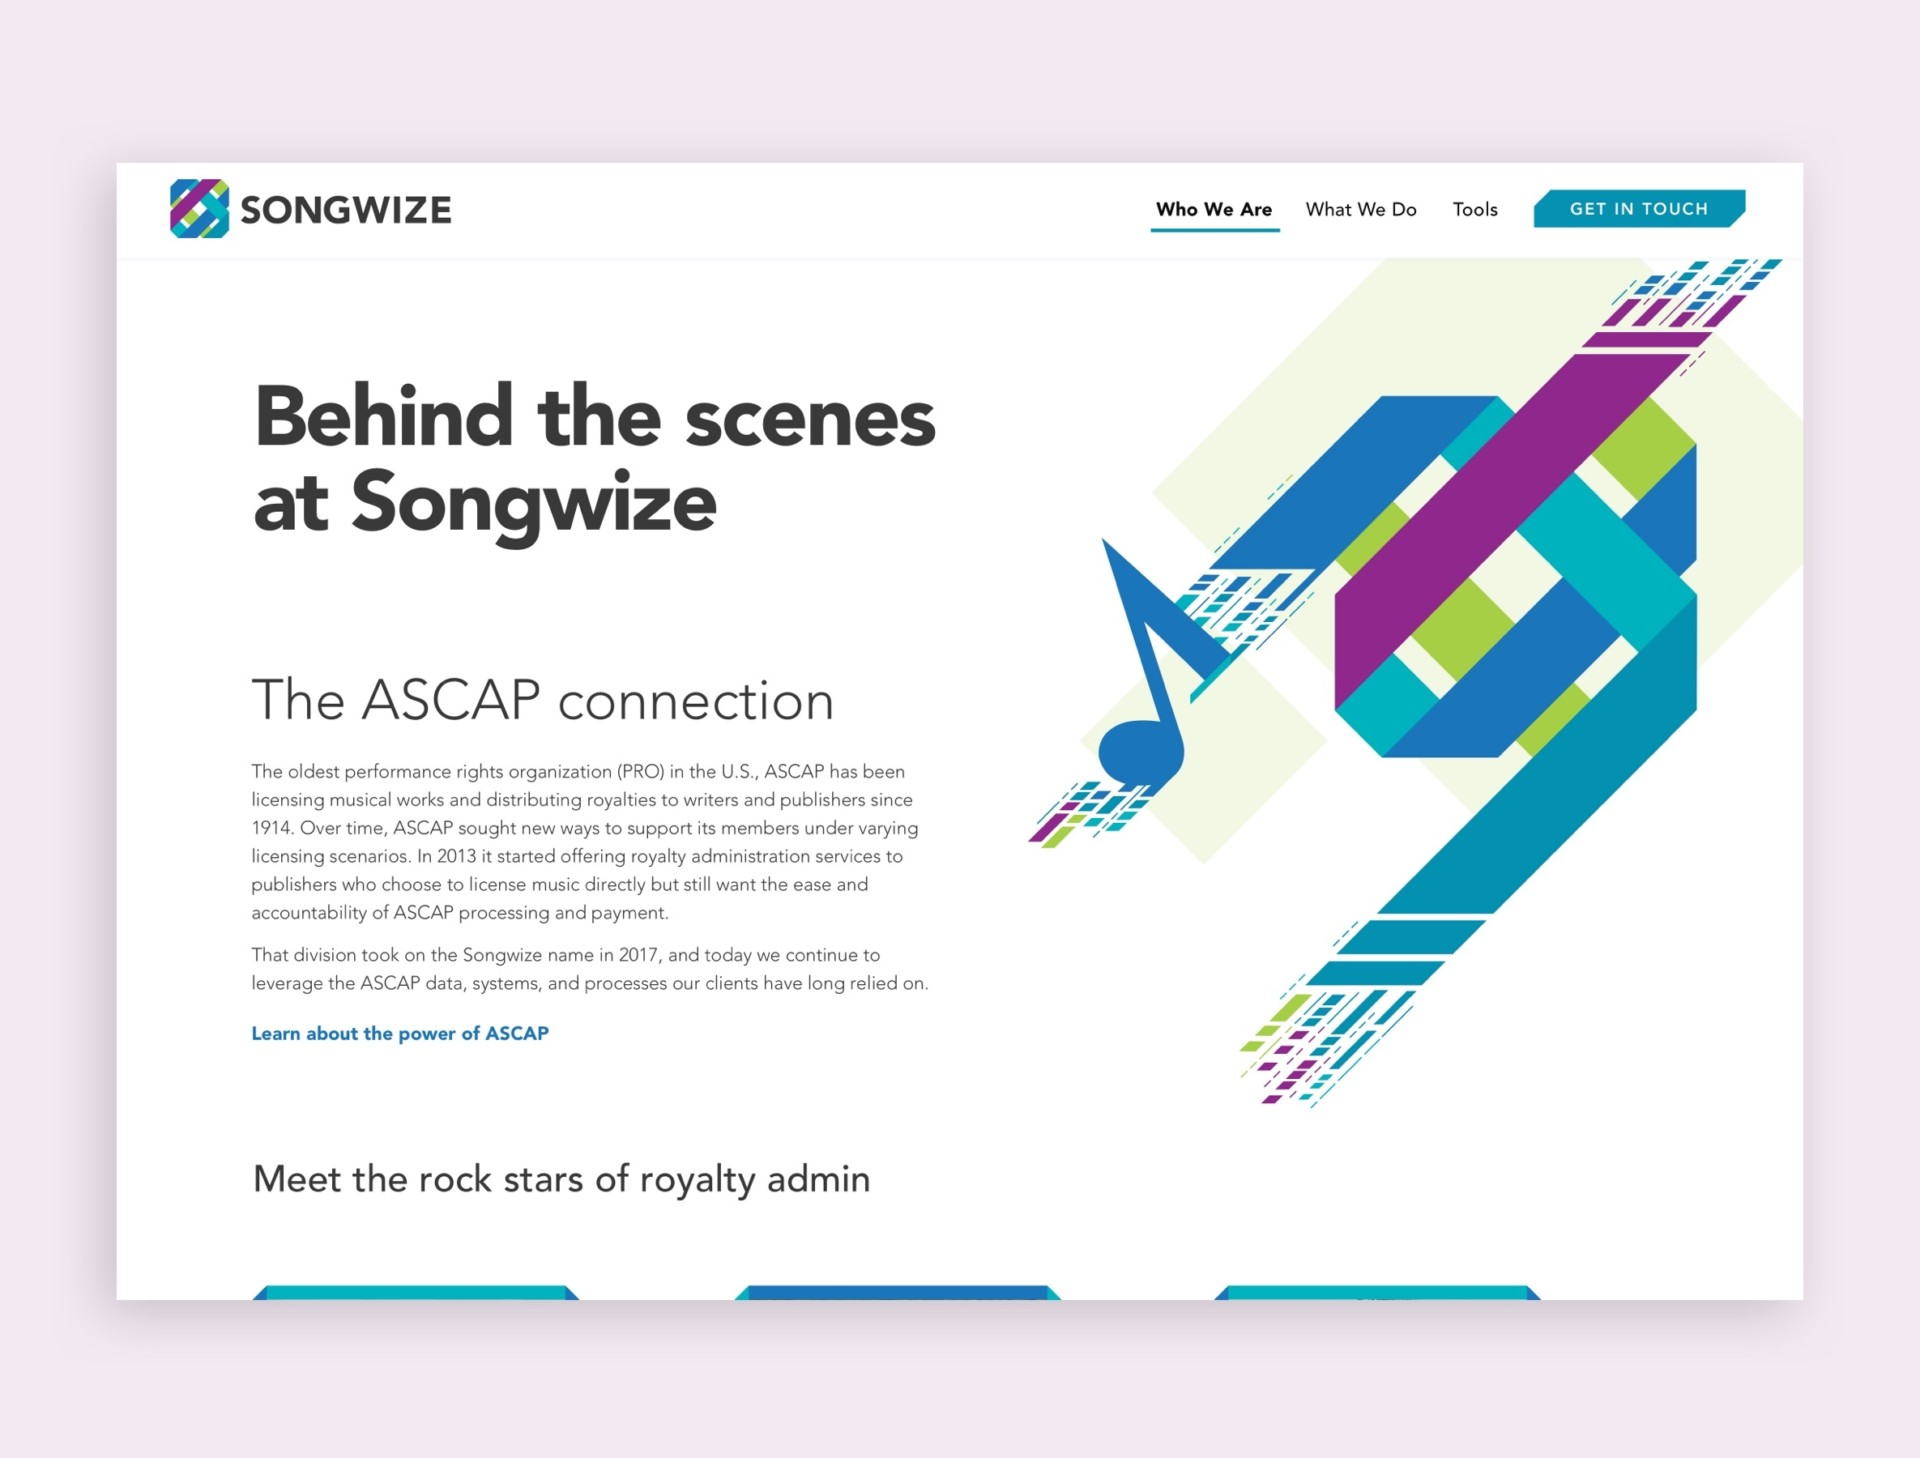 Songwize Home Screen - Behind The Scenes